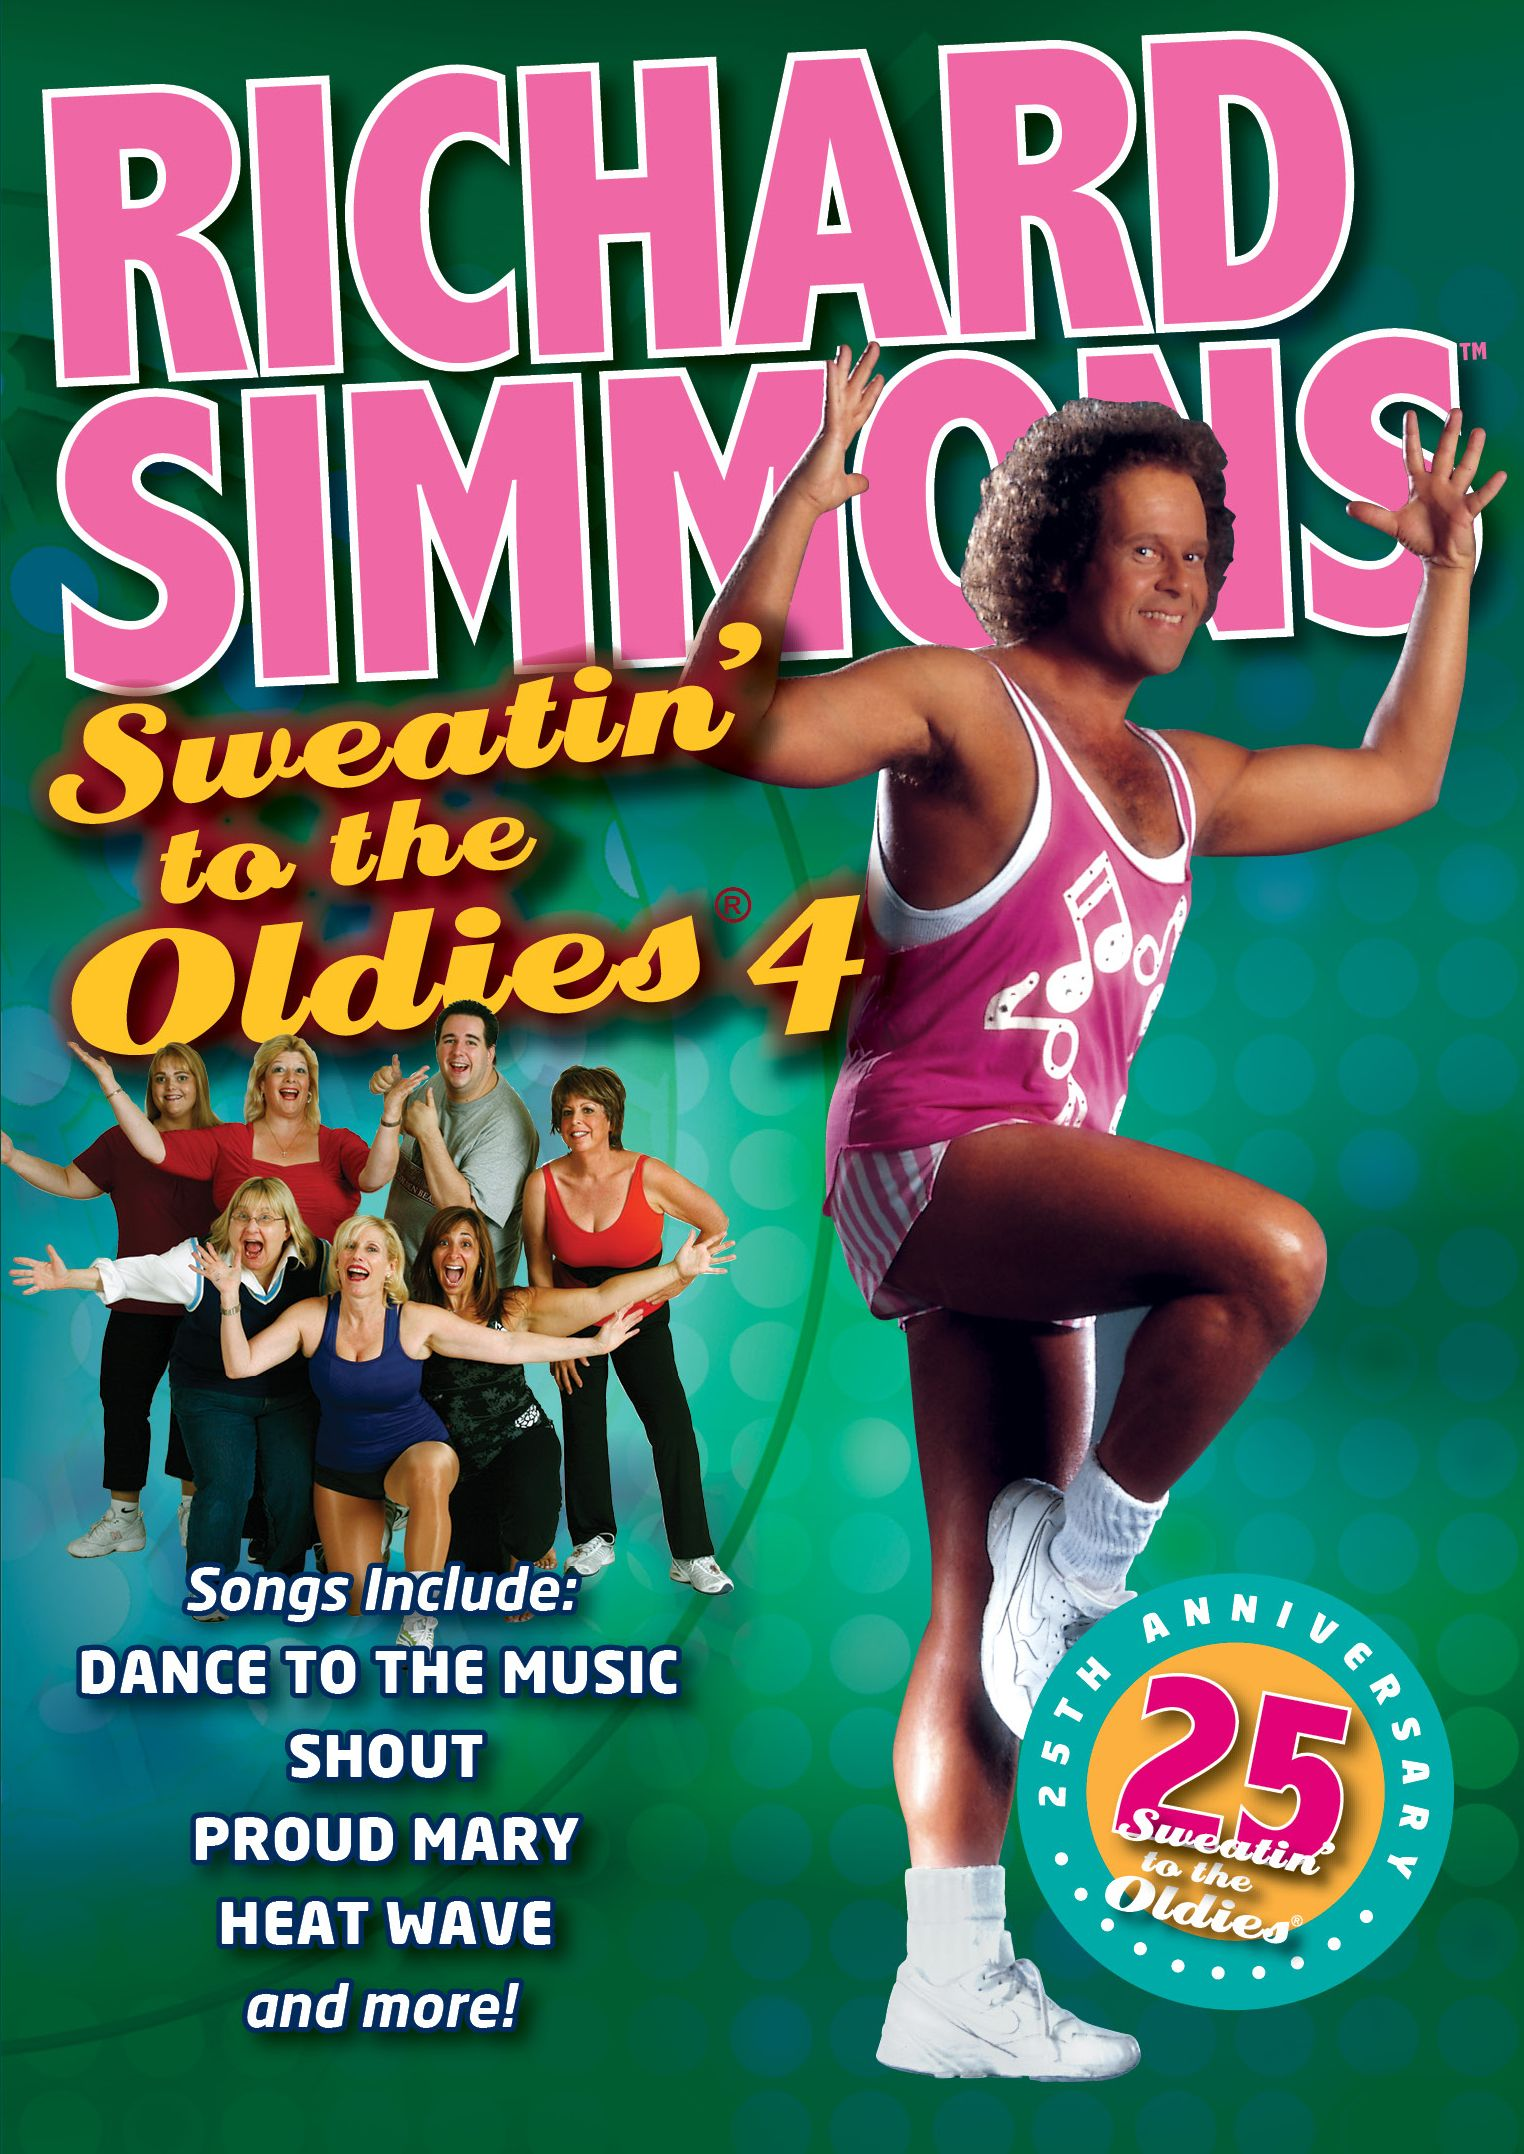 Richard Simmons: Sweatin' to the Oldies, Vol. 4